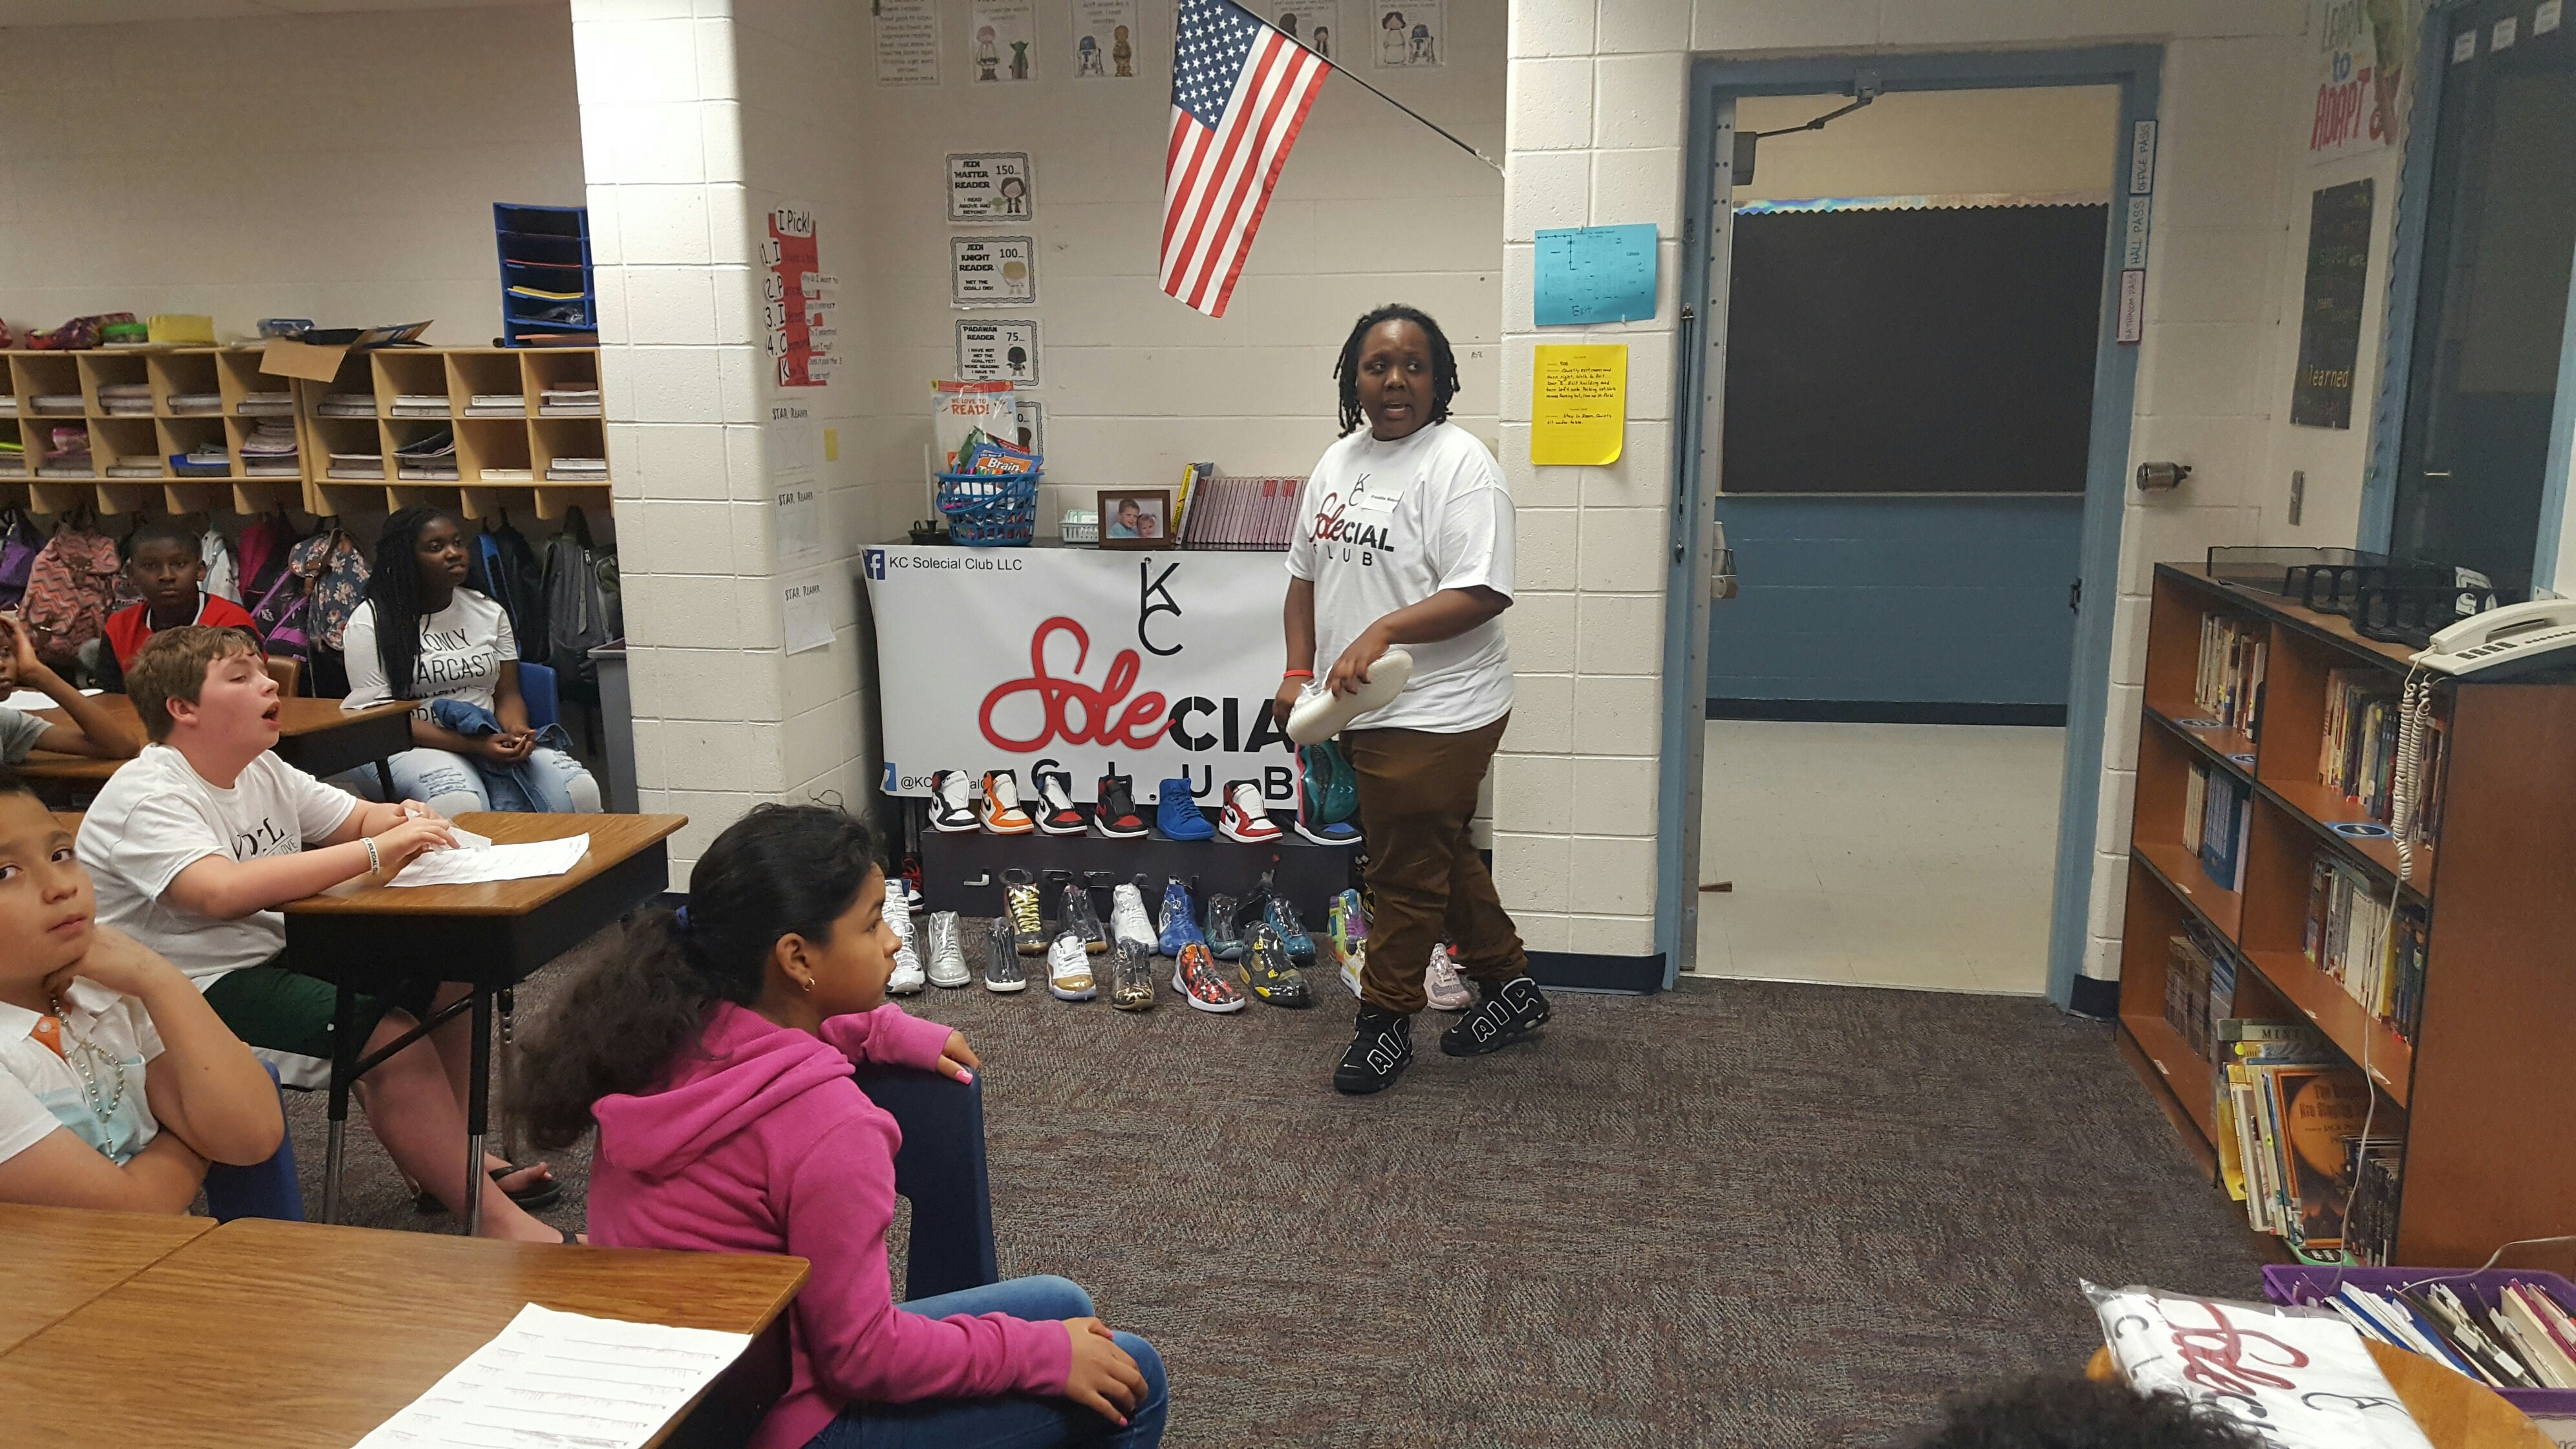 Solecial Club KC gives career day presentation.